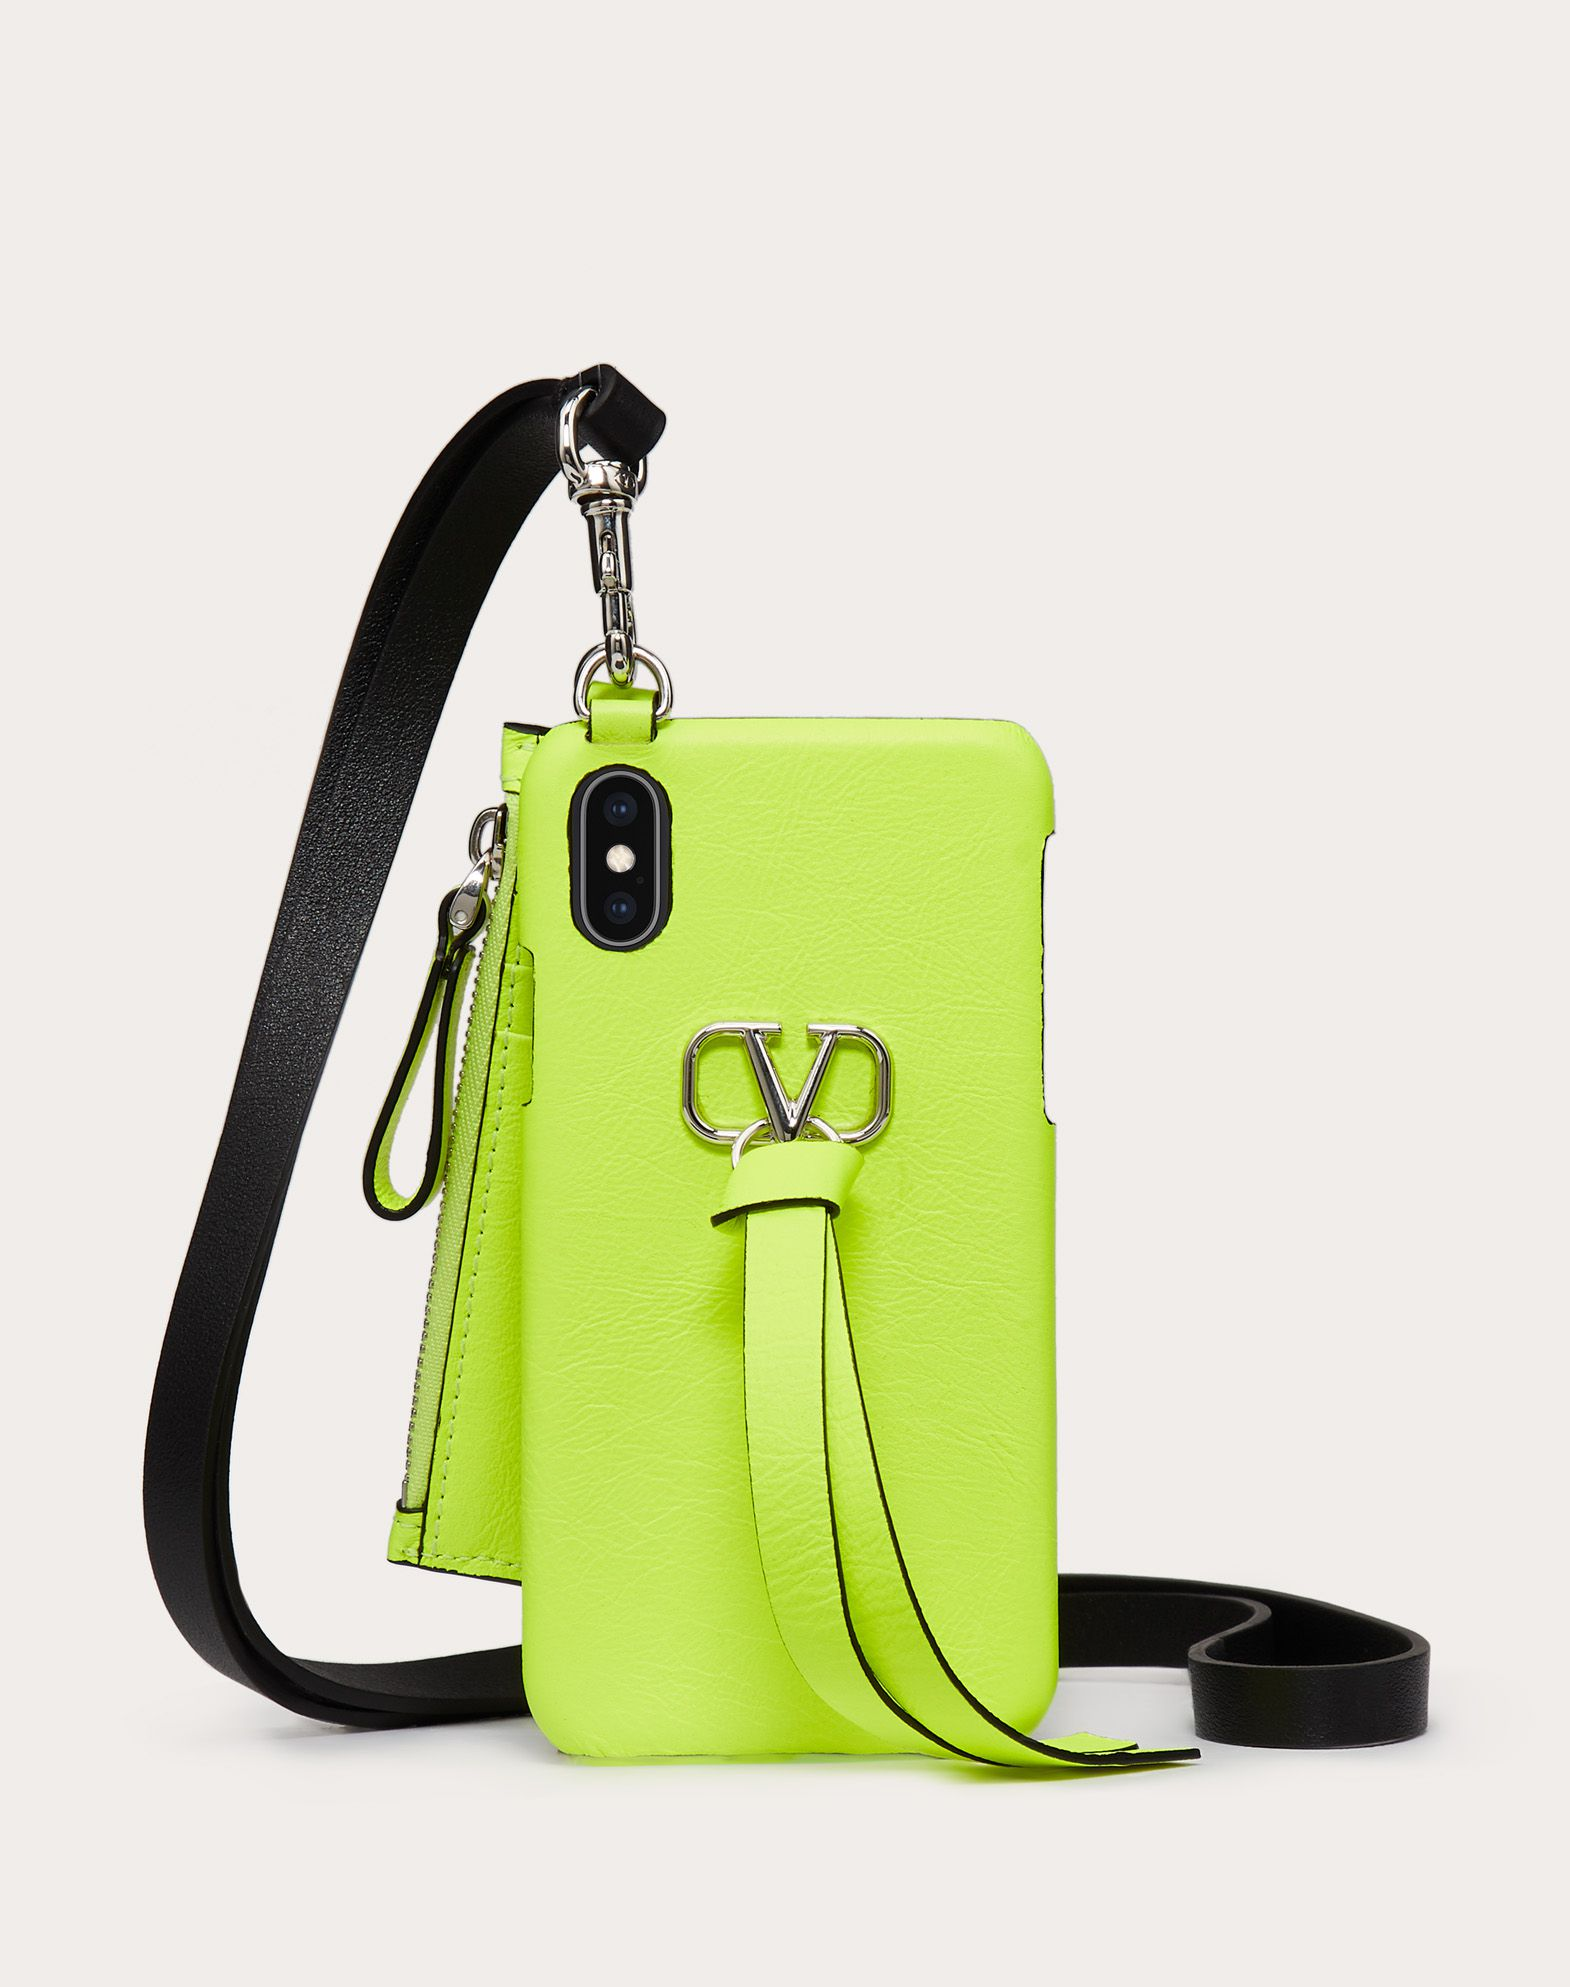 VRING Phone Case / Cardholder with Neck Strap